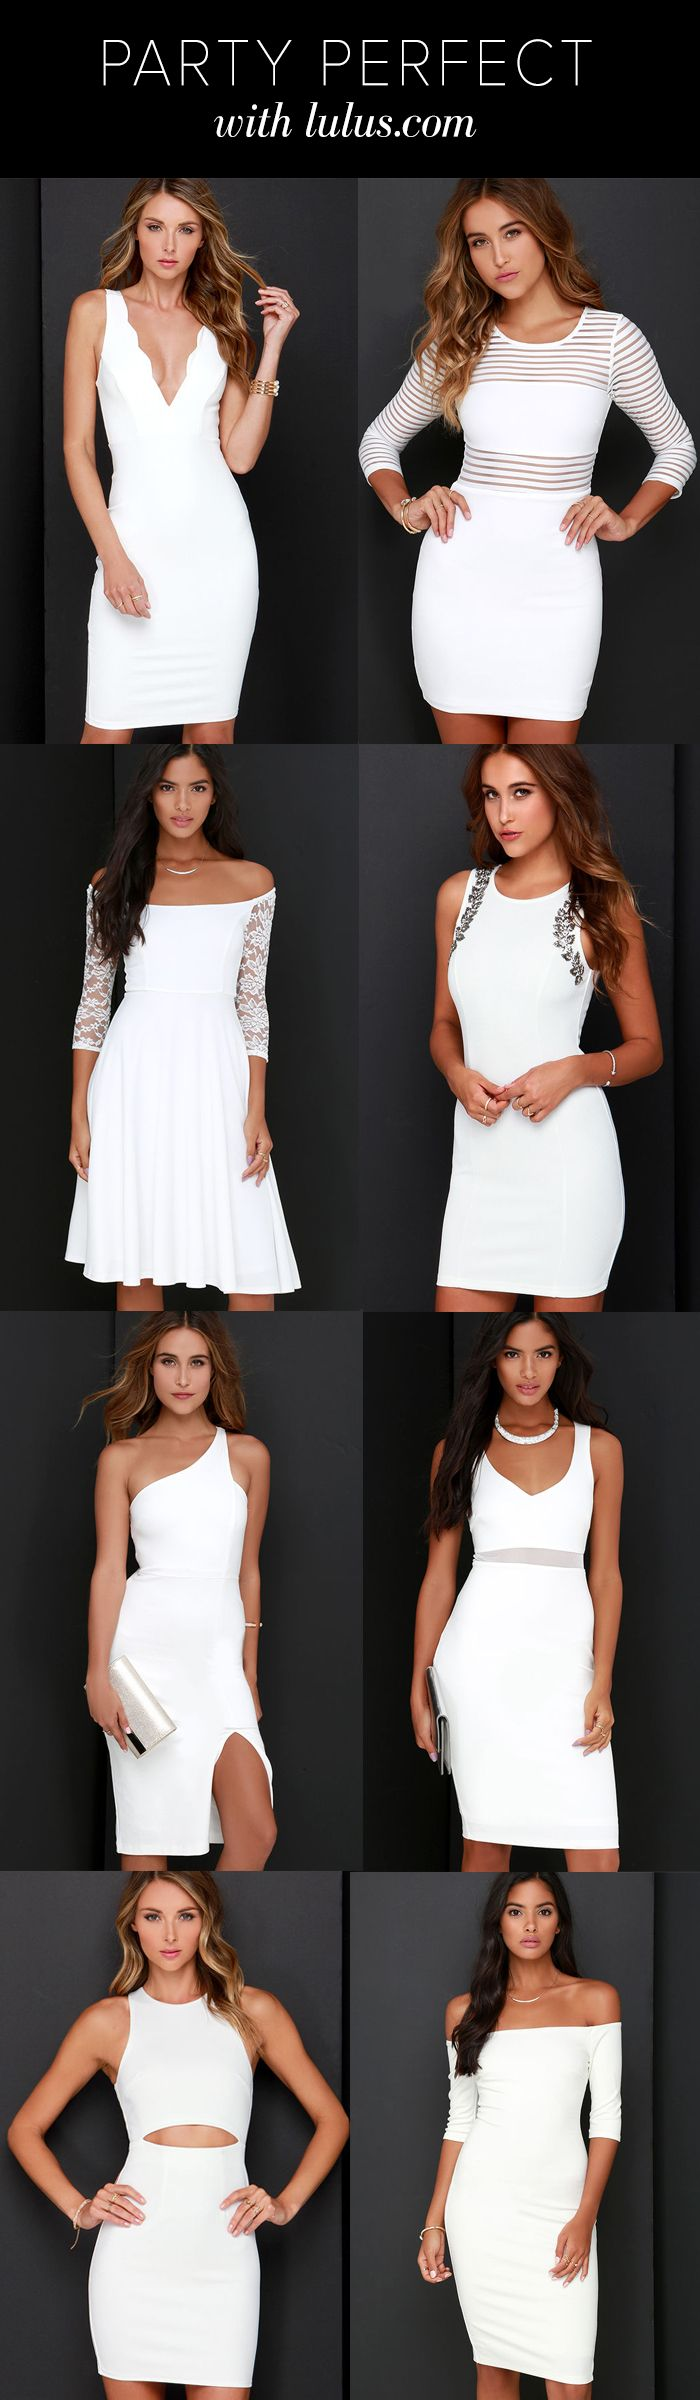 White dress dream meaning - Central Square Ivory Lace Midi Dress